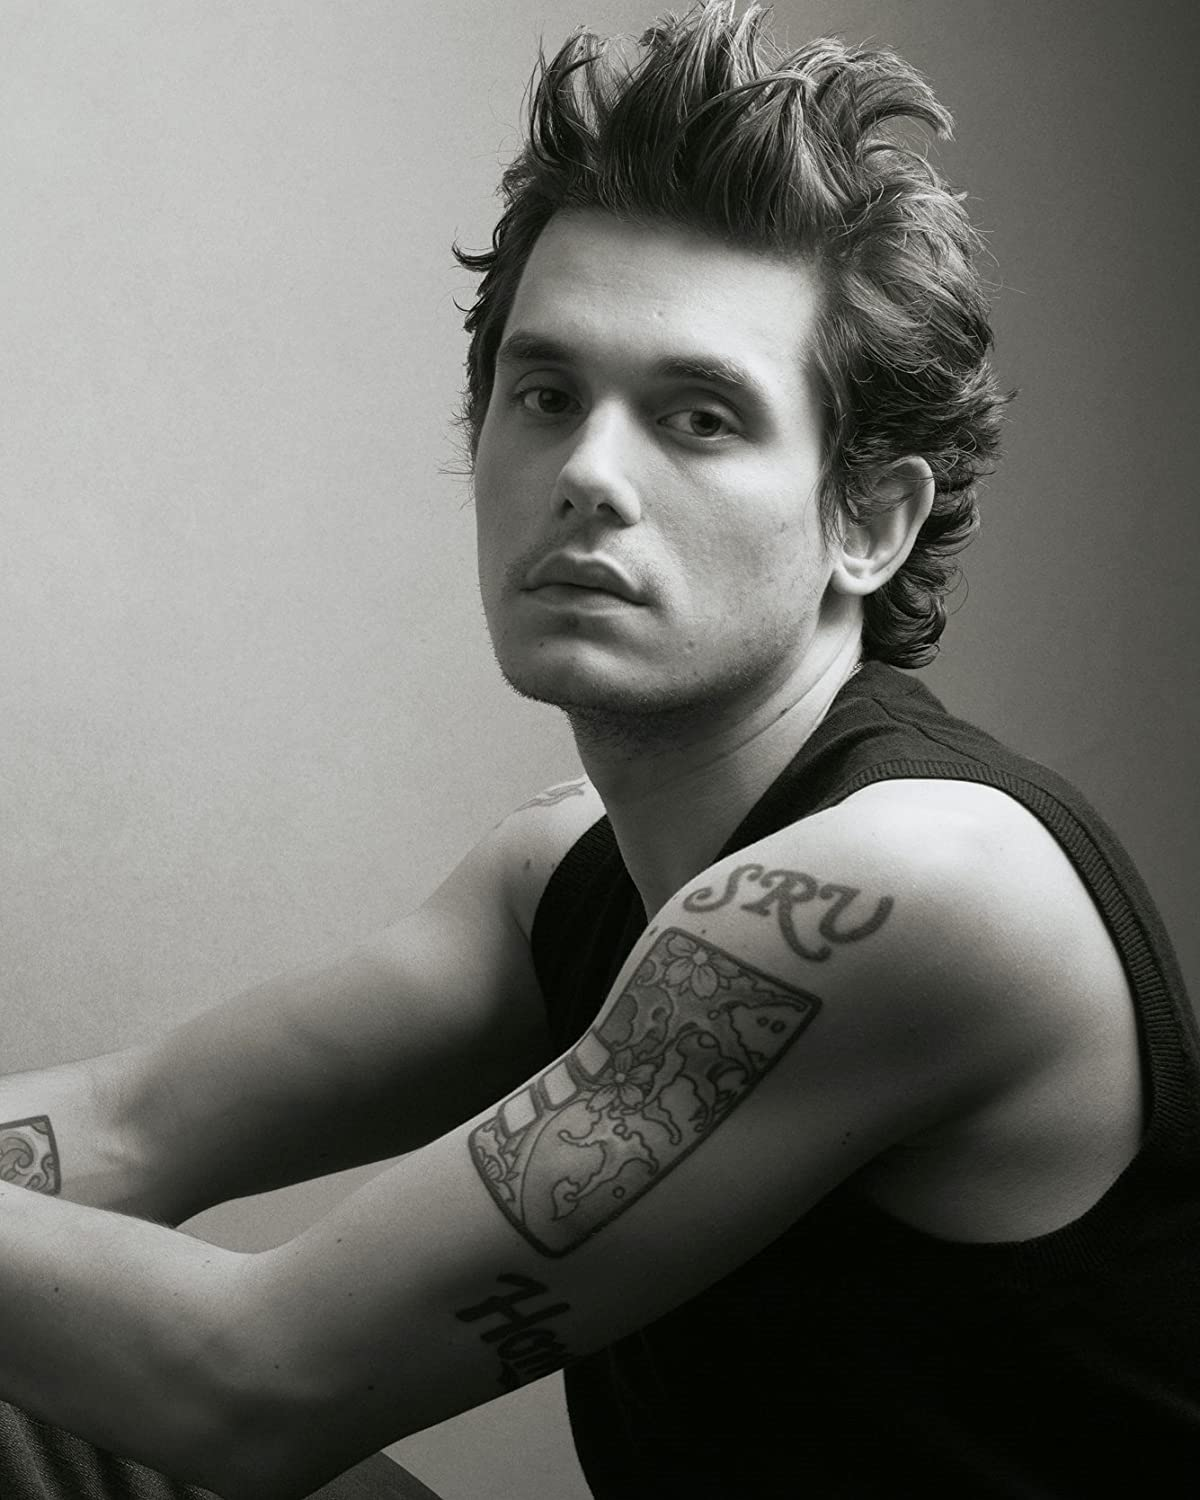 Amazon Com John Mayer 8 X 10 Glossy Photo Picture Image 3 Posters Prints